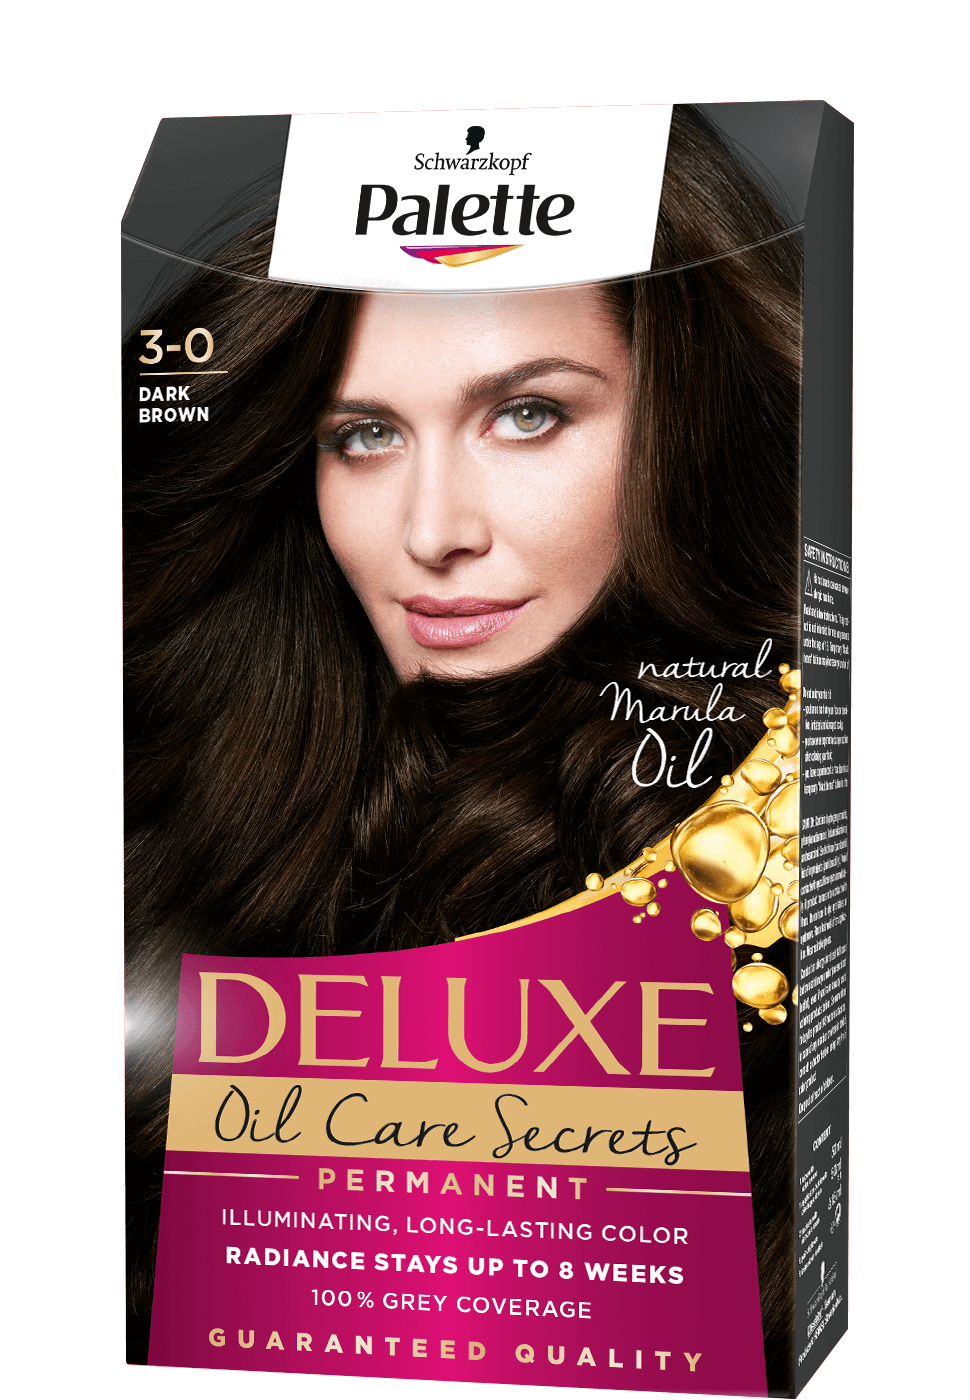 palette_com_oil_care_secrets_3_0_dark_brown_970x1400